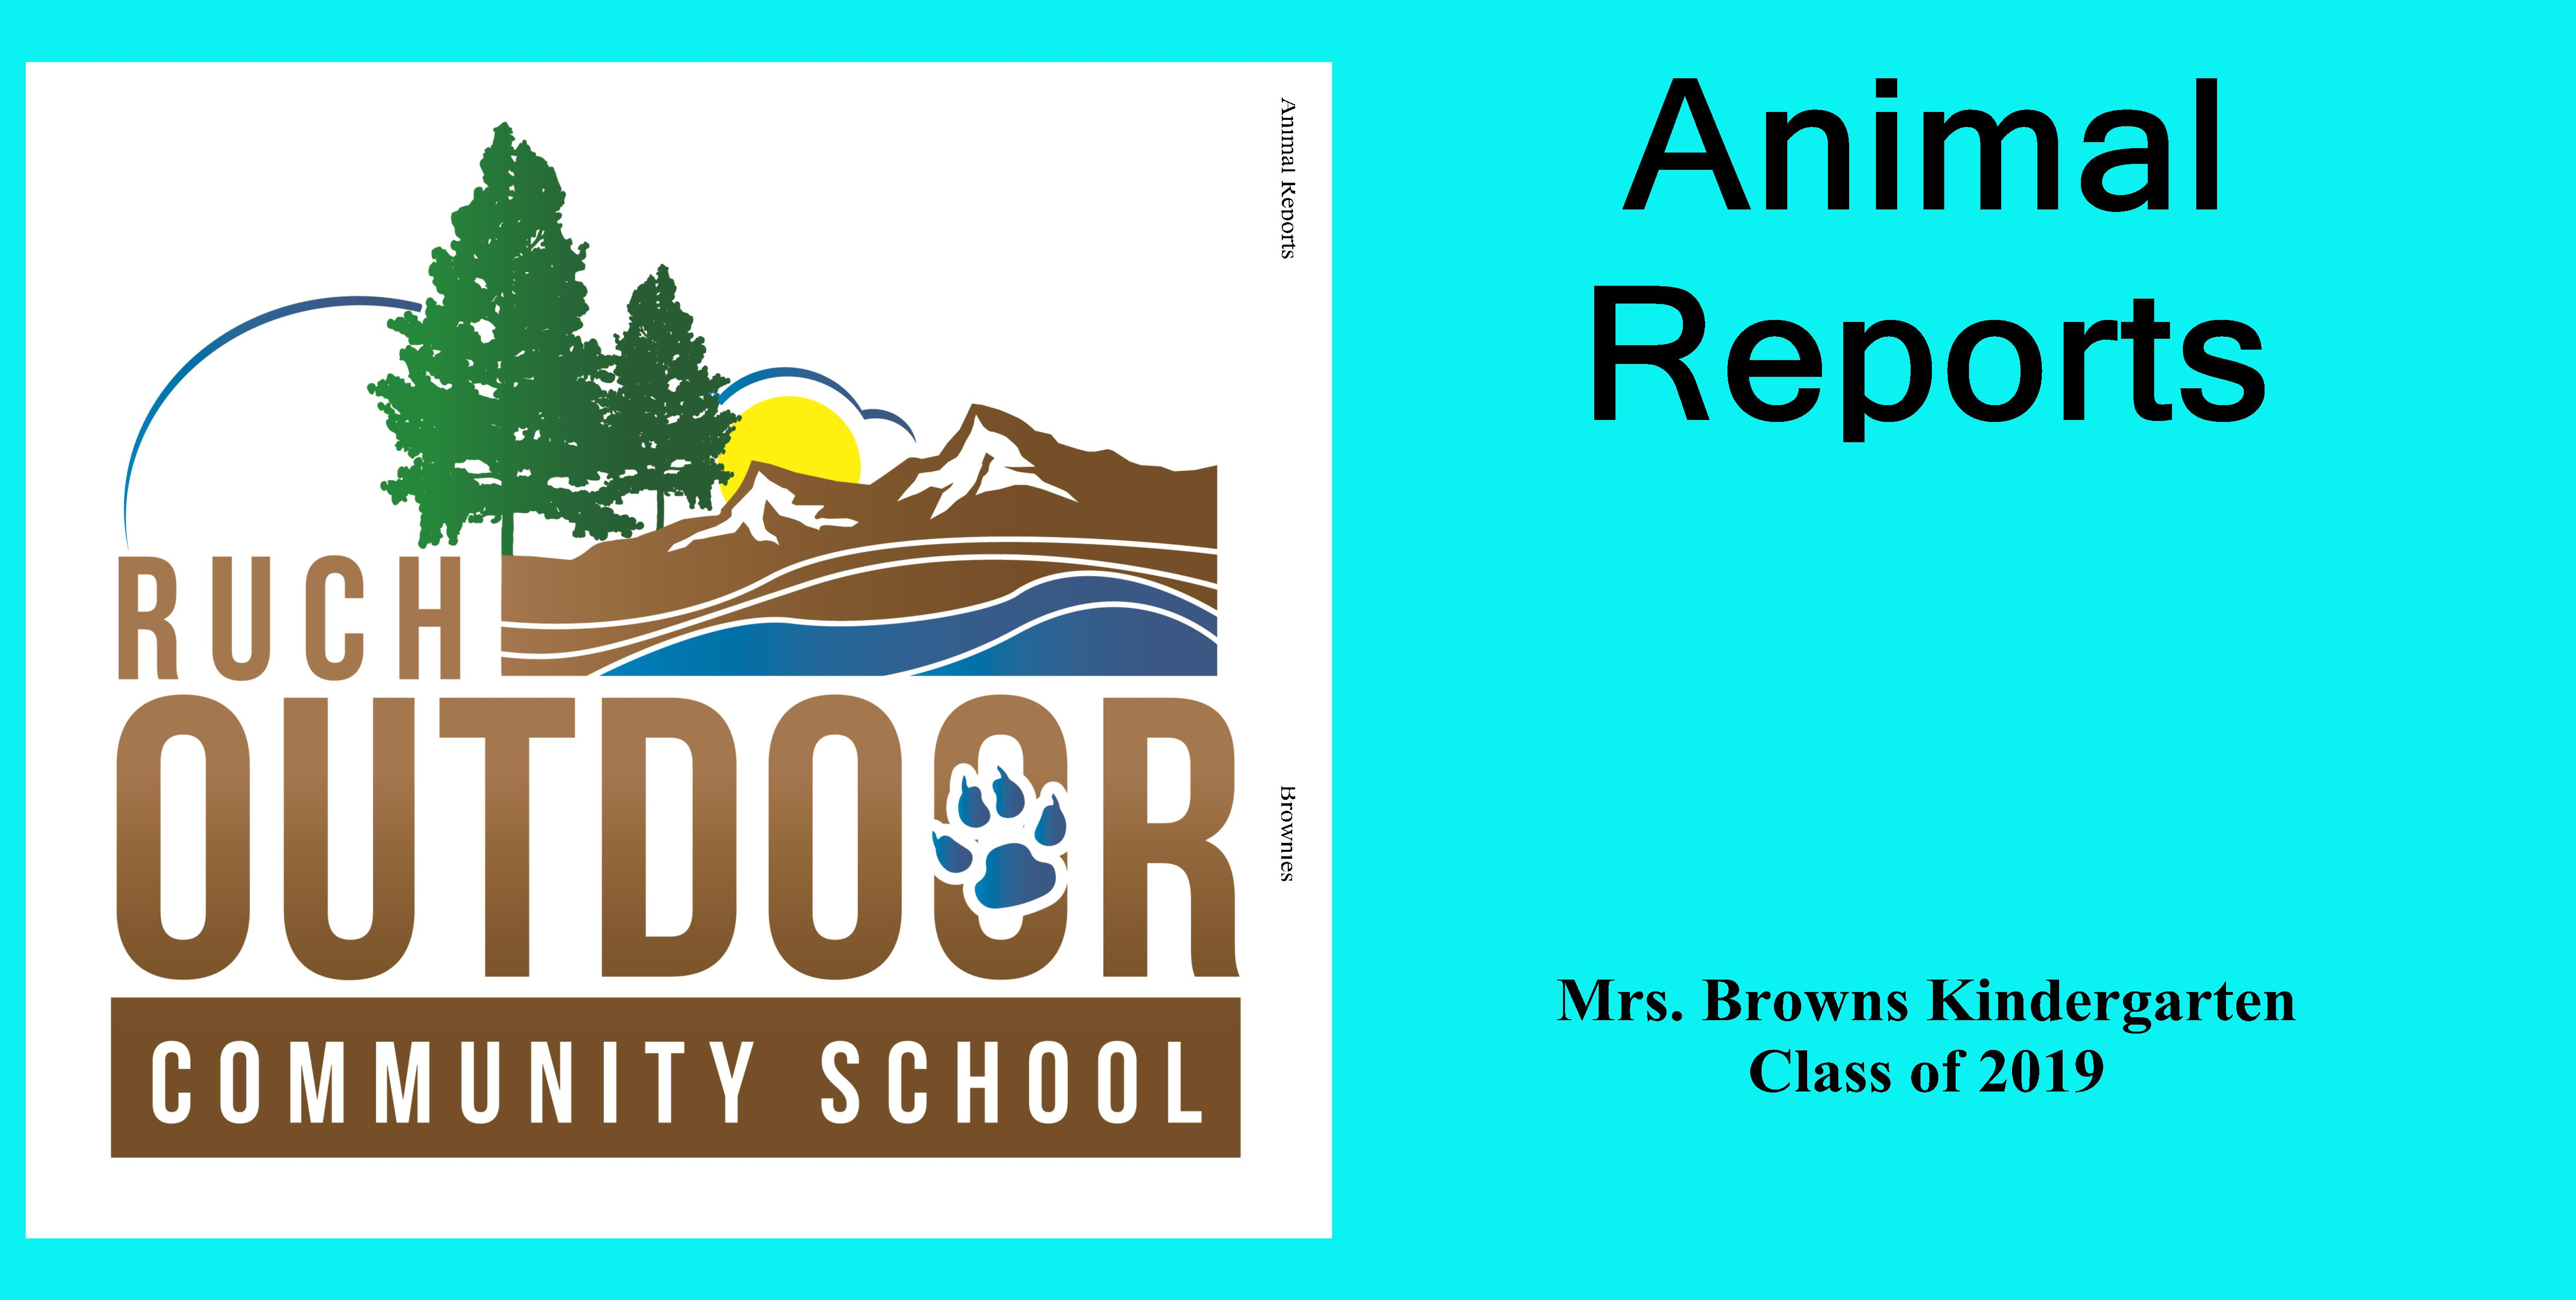 Animal Reports cover image